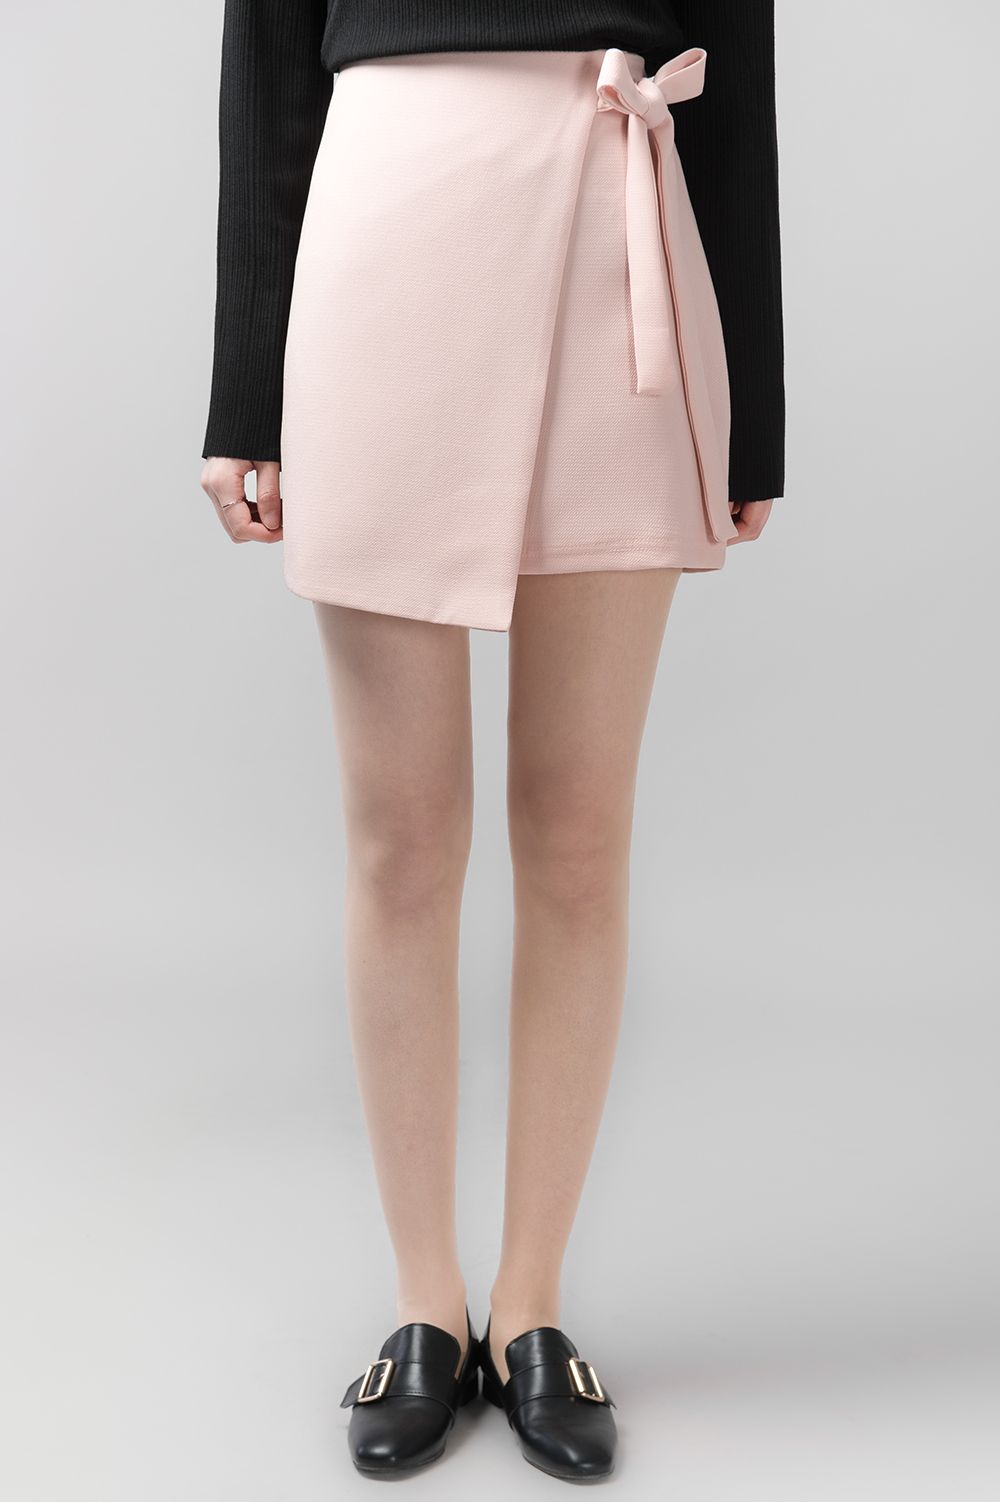 #mixxmix Ribbon Wrap Mini Skirt (BWSJ) Cute and sleek, this mini skirt has that trendy wrap style with ribbon fastening. #mxm #hideandseek #has #365basic #bauhaus #99bunny#koreanfashionstyle #girlsfashion #lovelywoman #kstyle #koreangirls #streetfashion #twinlook #dailyoutfit #styling